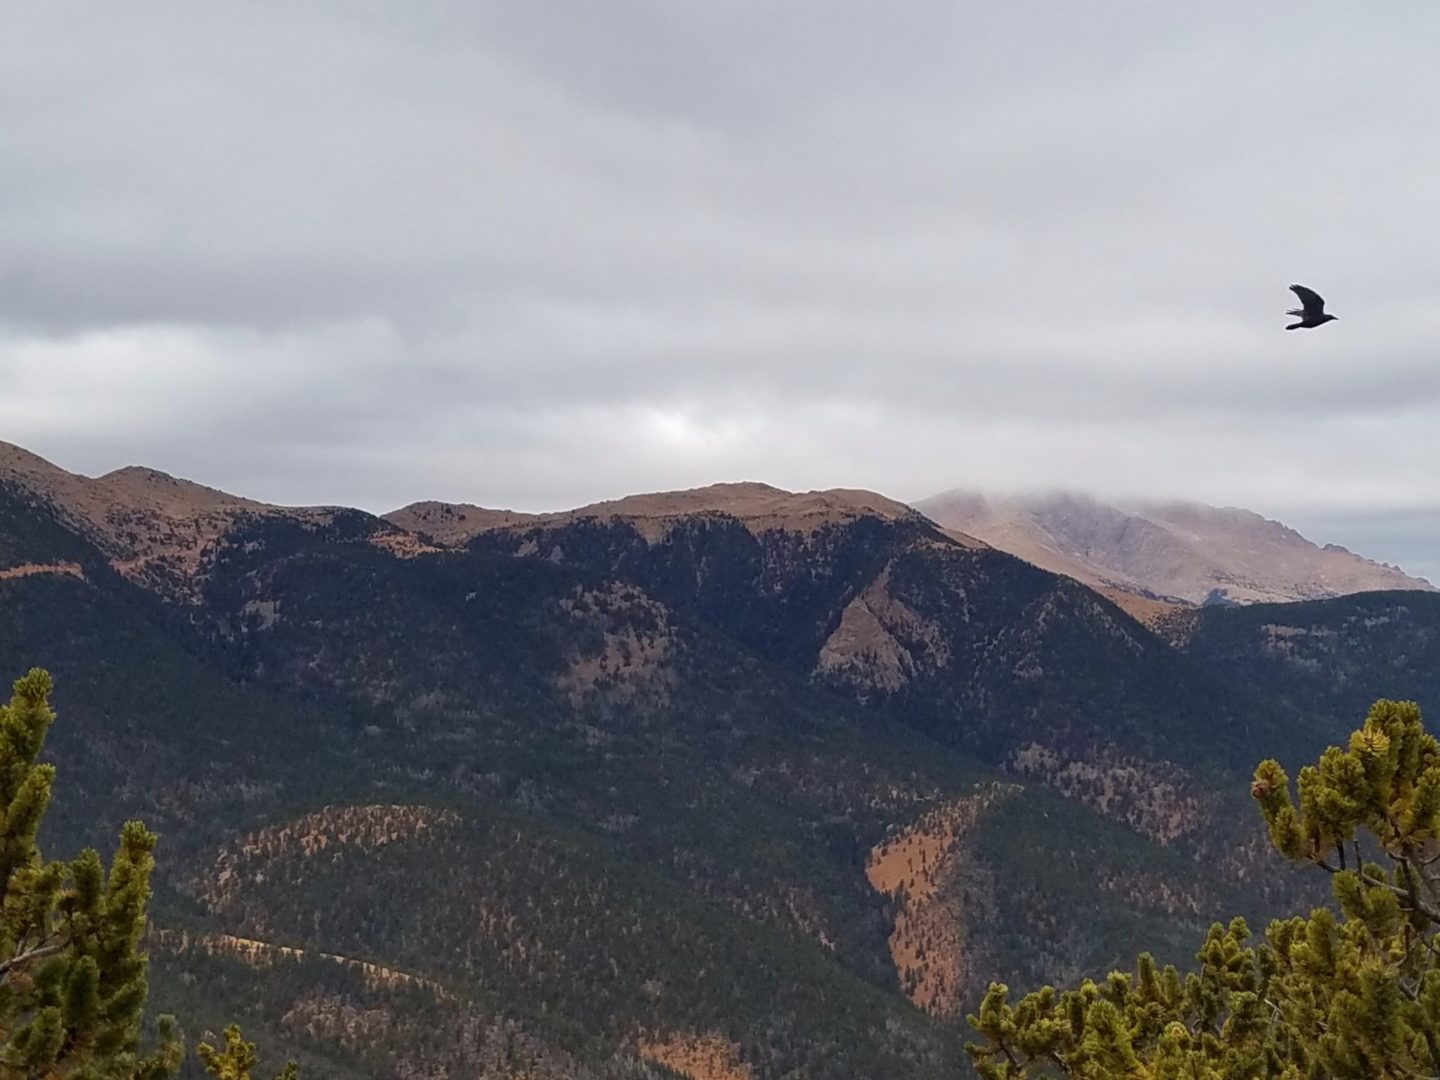 Pike Peak in the background, with Almagre Mountain in the foreground